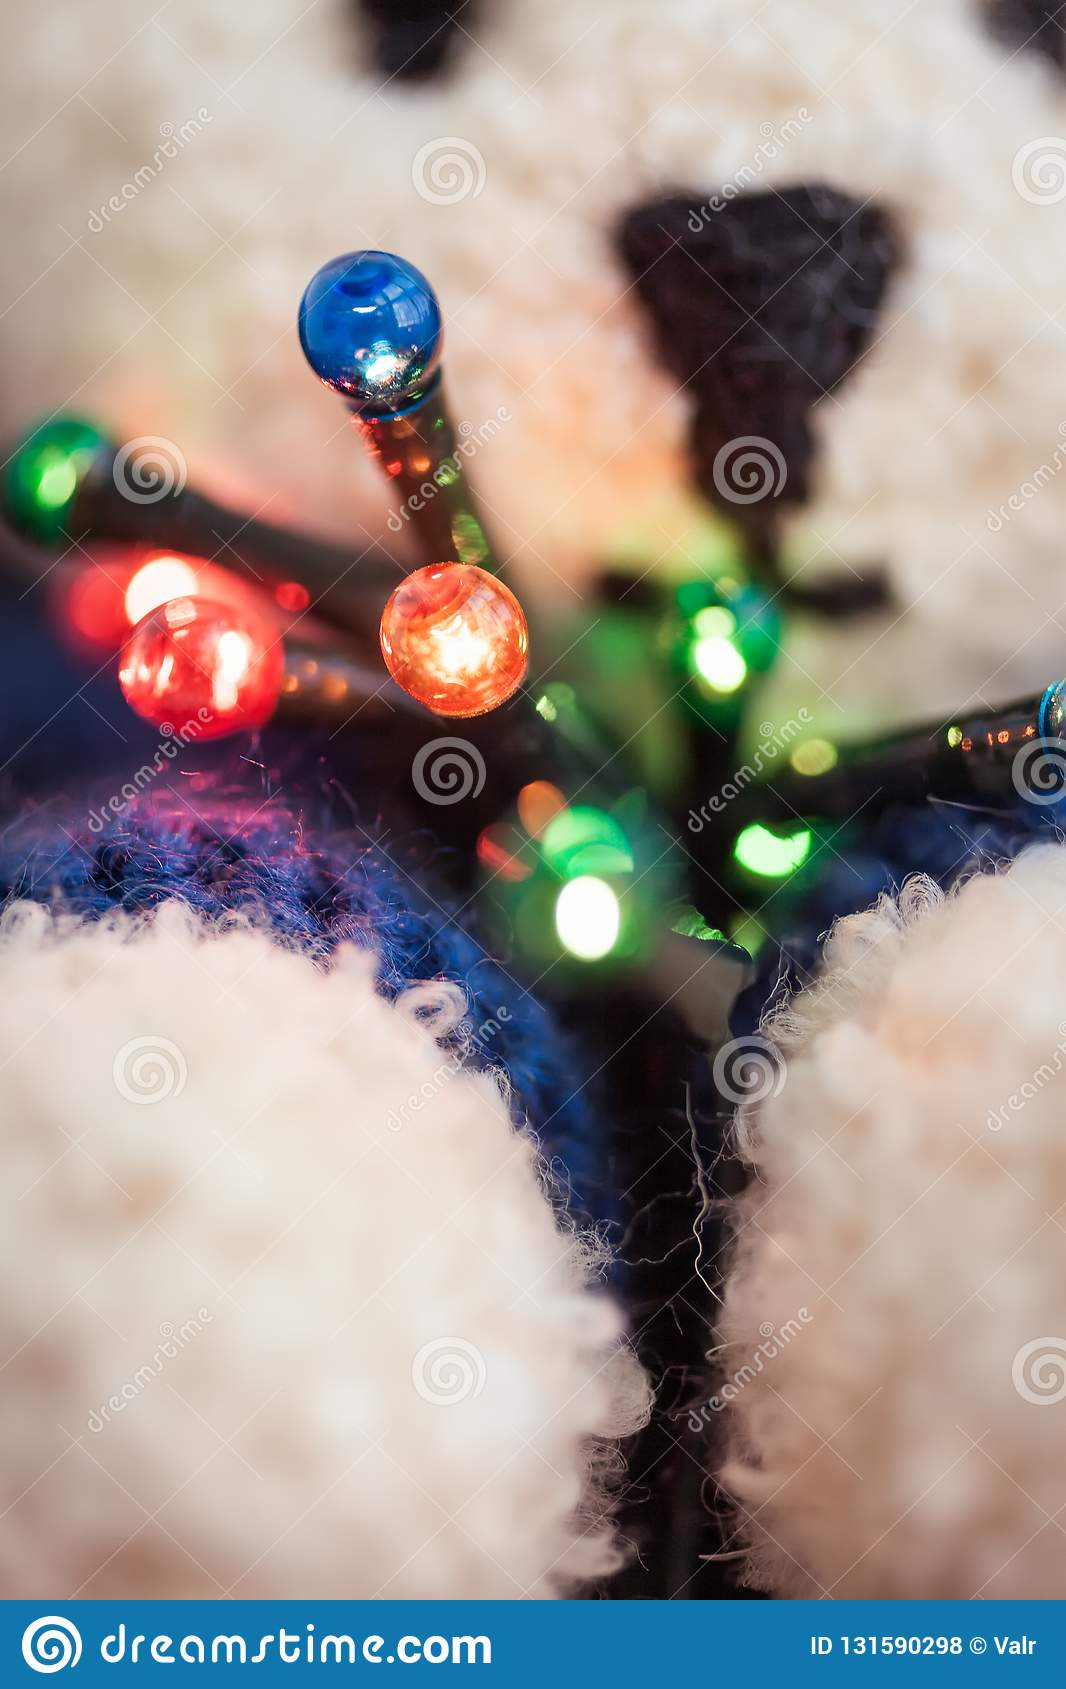 Cute white teddy bear with Christmas lights